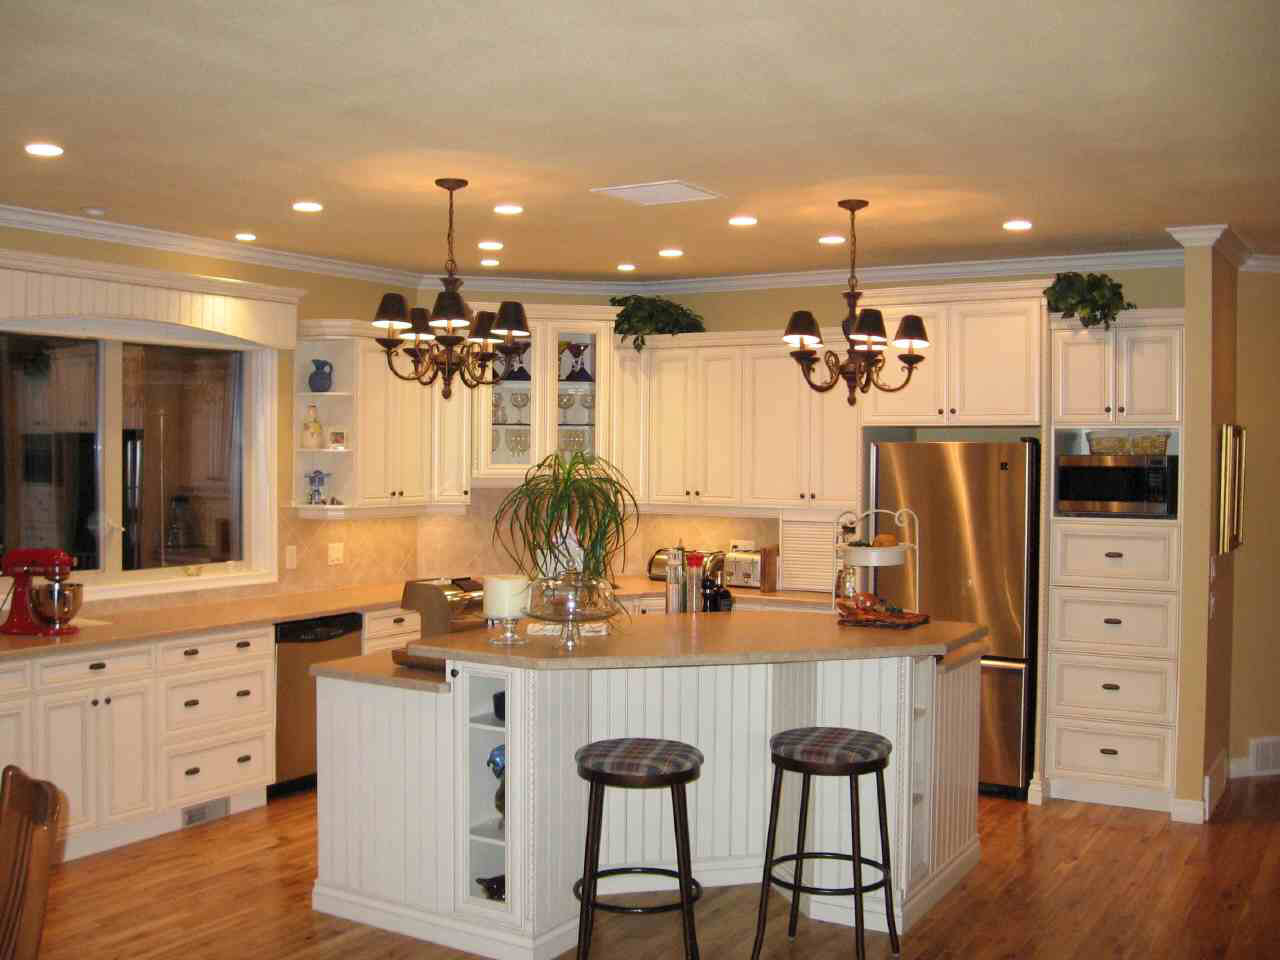 Peartreedesigns beautiful modern kitchen interiors for Interior design images kitchen